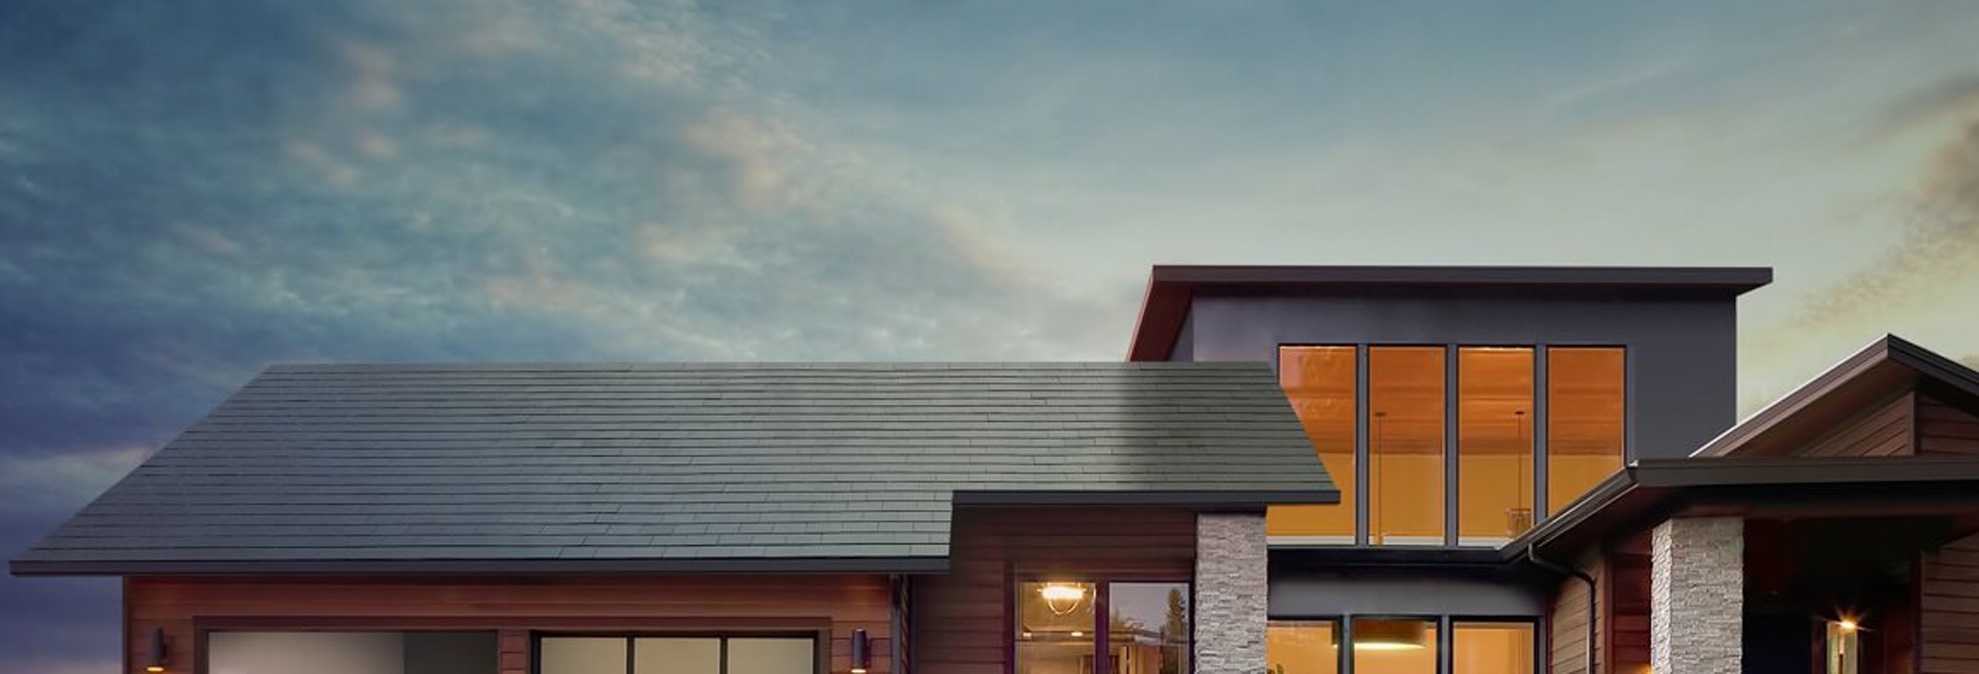 Used Suvs Near Me >> Here's How Much Tesla's New Solar Roof Could Cost - Consumer Reports